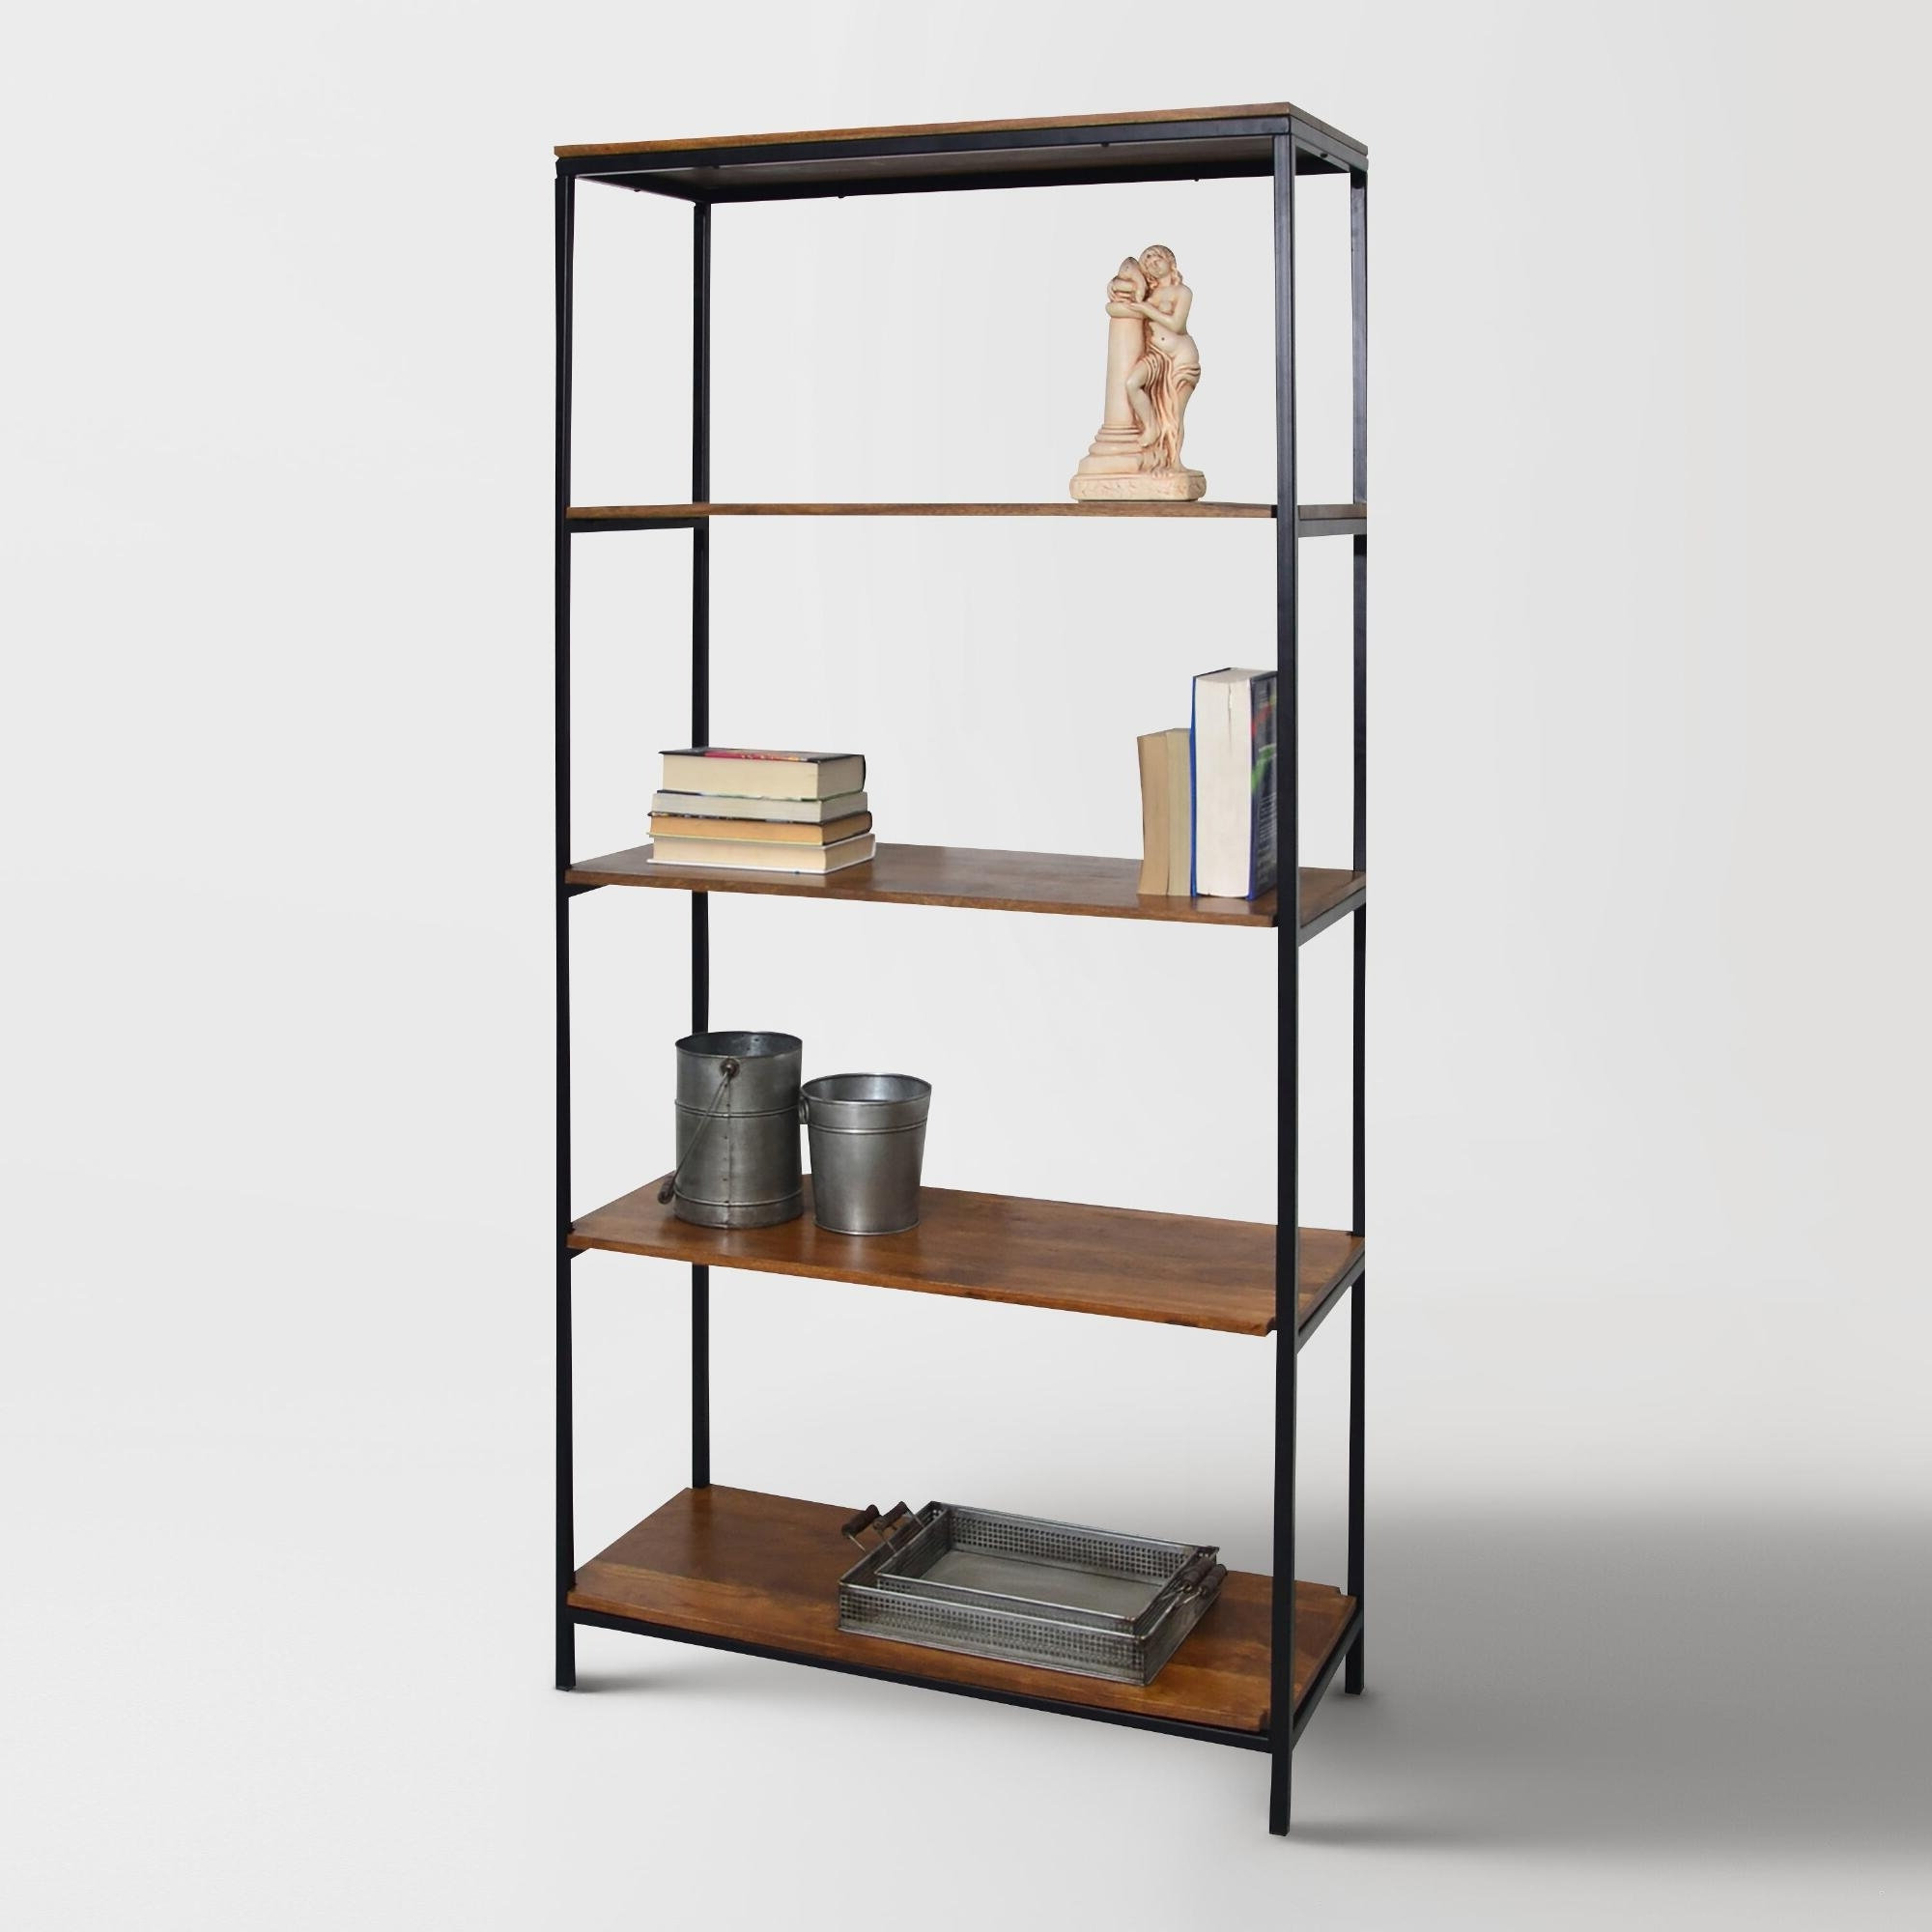 Accessories Furnitureastounding Metal Narrow Wood Bookcase And Intended For Most Recently Released Wood And Metal Bookcases (View 13 of 15)